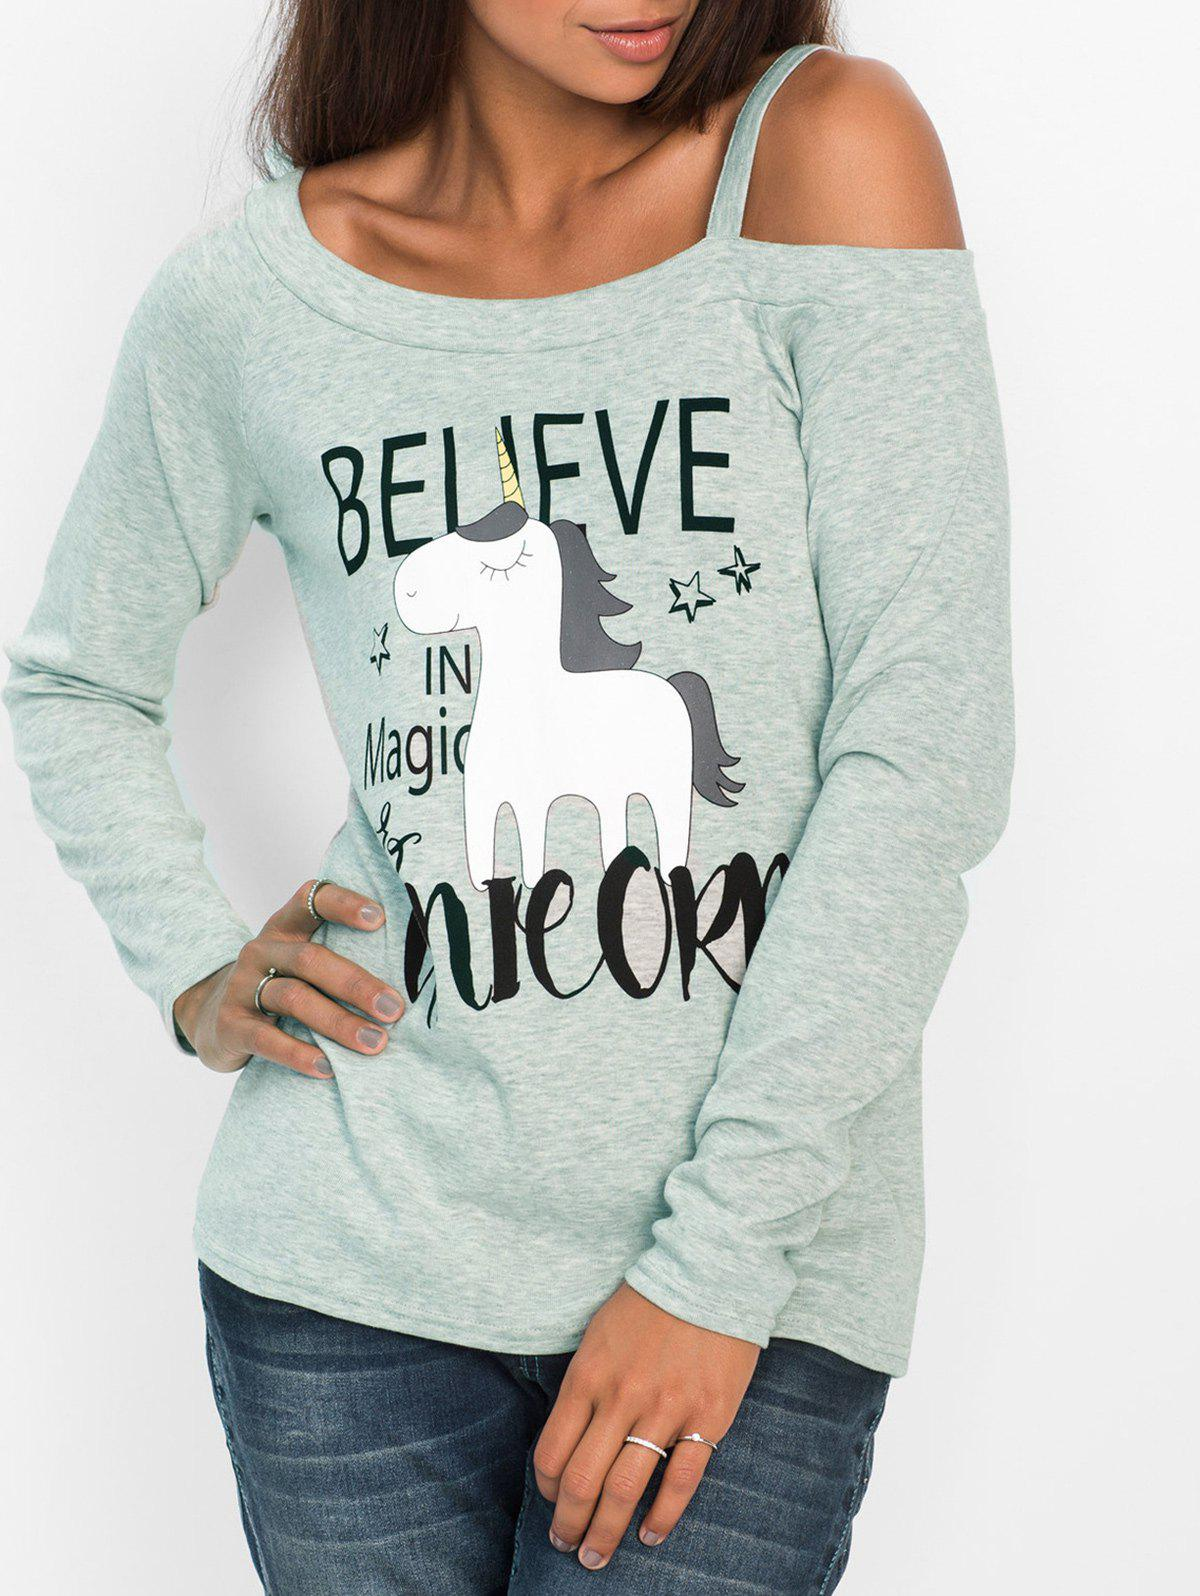 One Shoulder Animal Pattern T-shirtWOMEN<br><br>Size: M; Color: LIGHT GRAY; Material: Cotton,Polyester; Shirt Length: Regular; Sleeve Length: Full; Collar: One-Shoulder; Style: Fashion; Pattern Type: Animal; Season: Fall,Winter; Weight: 0.2600kg; Package Contents: 1 x T-shirt;